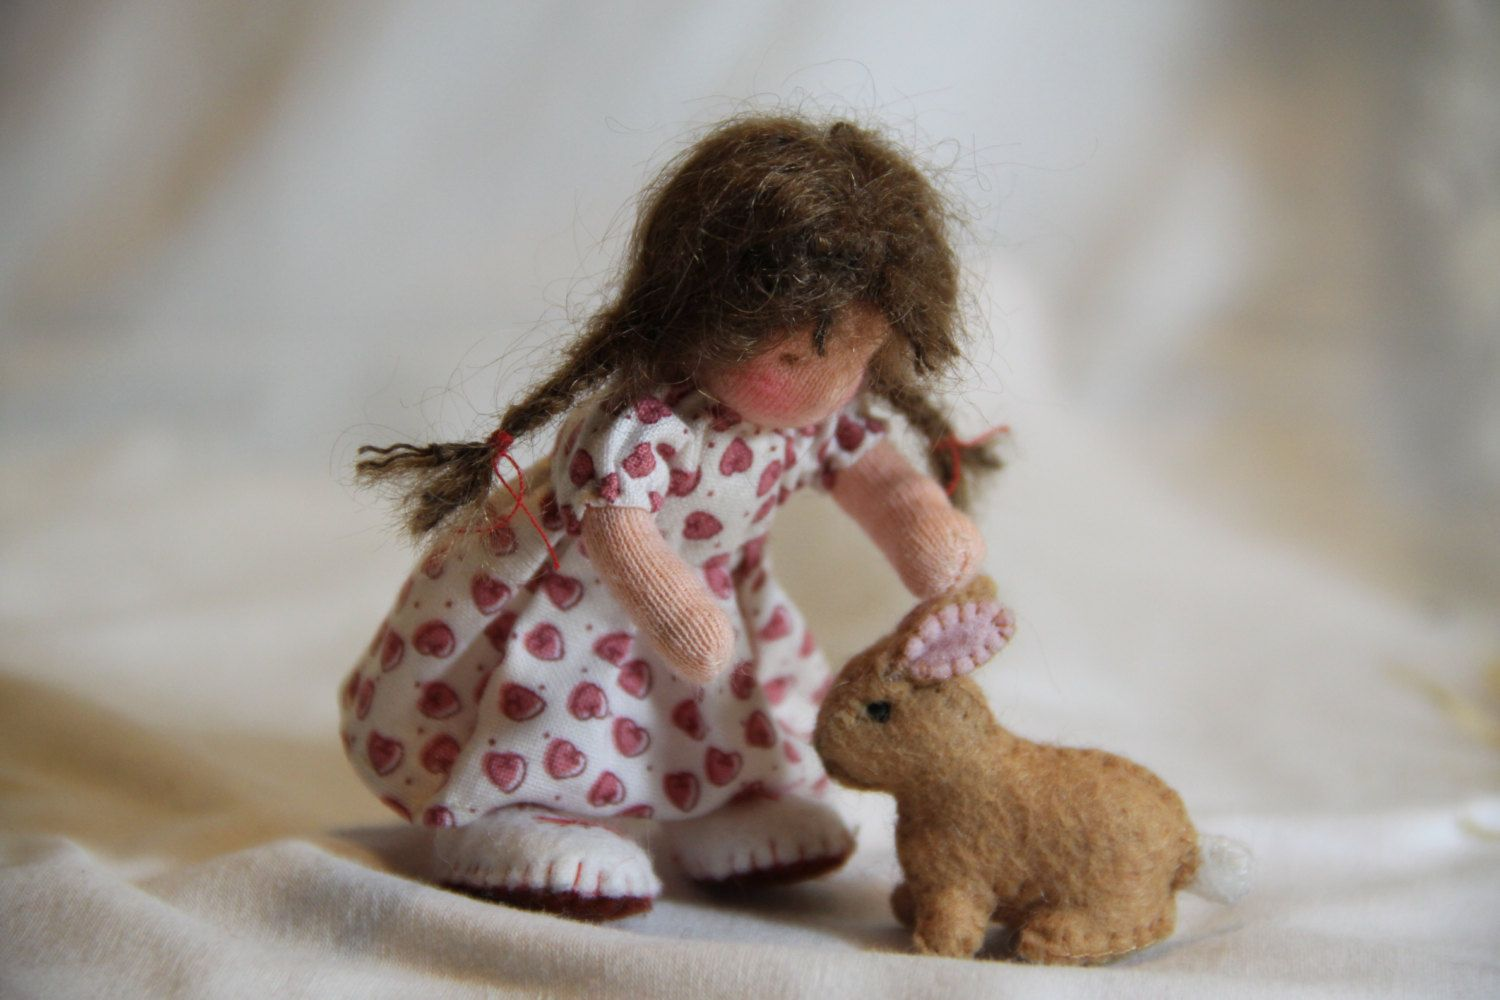 Doll toys images  Custom order for a bendy dollhouse doll about